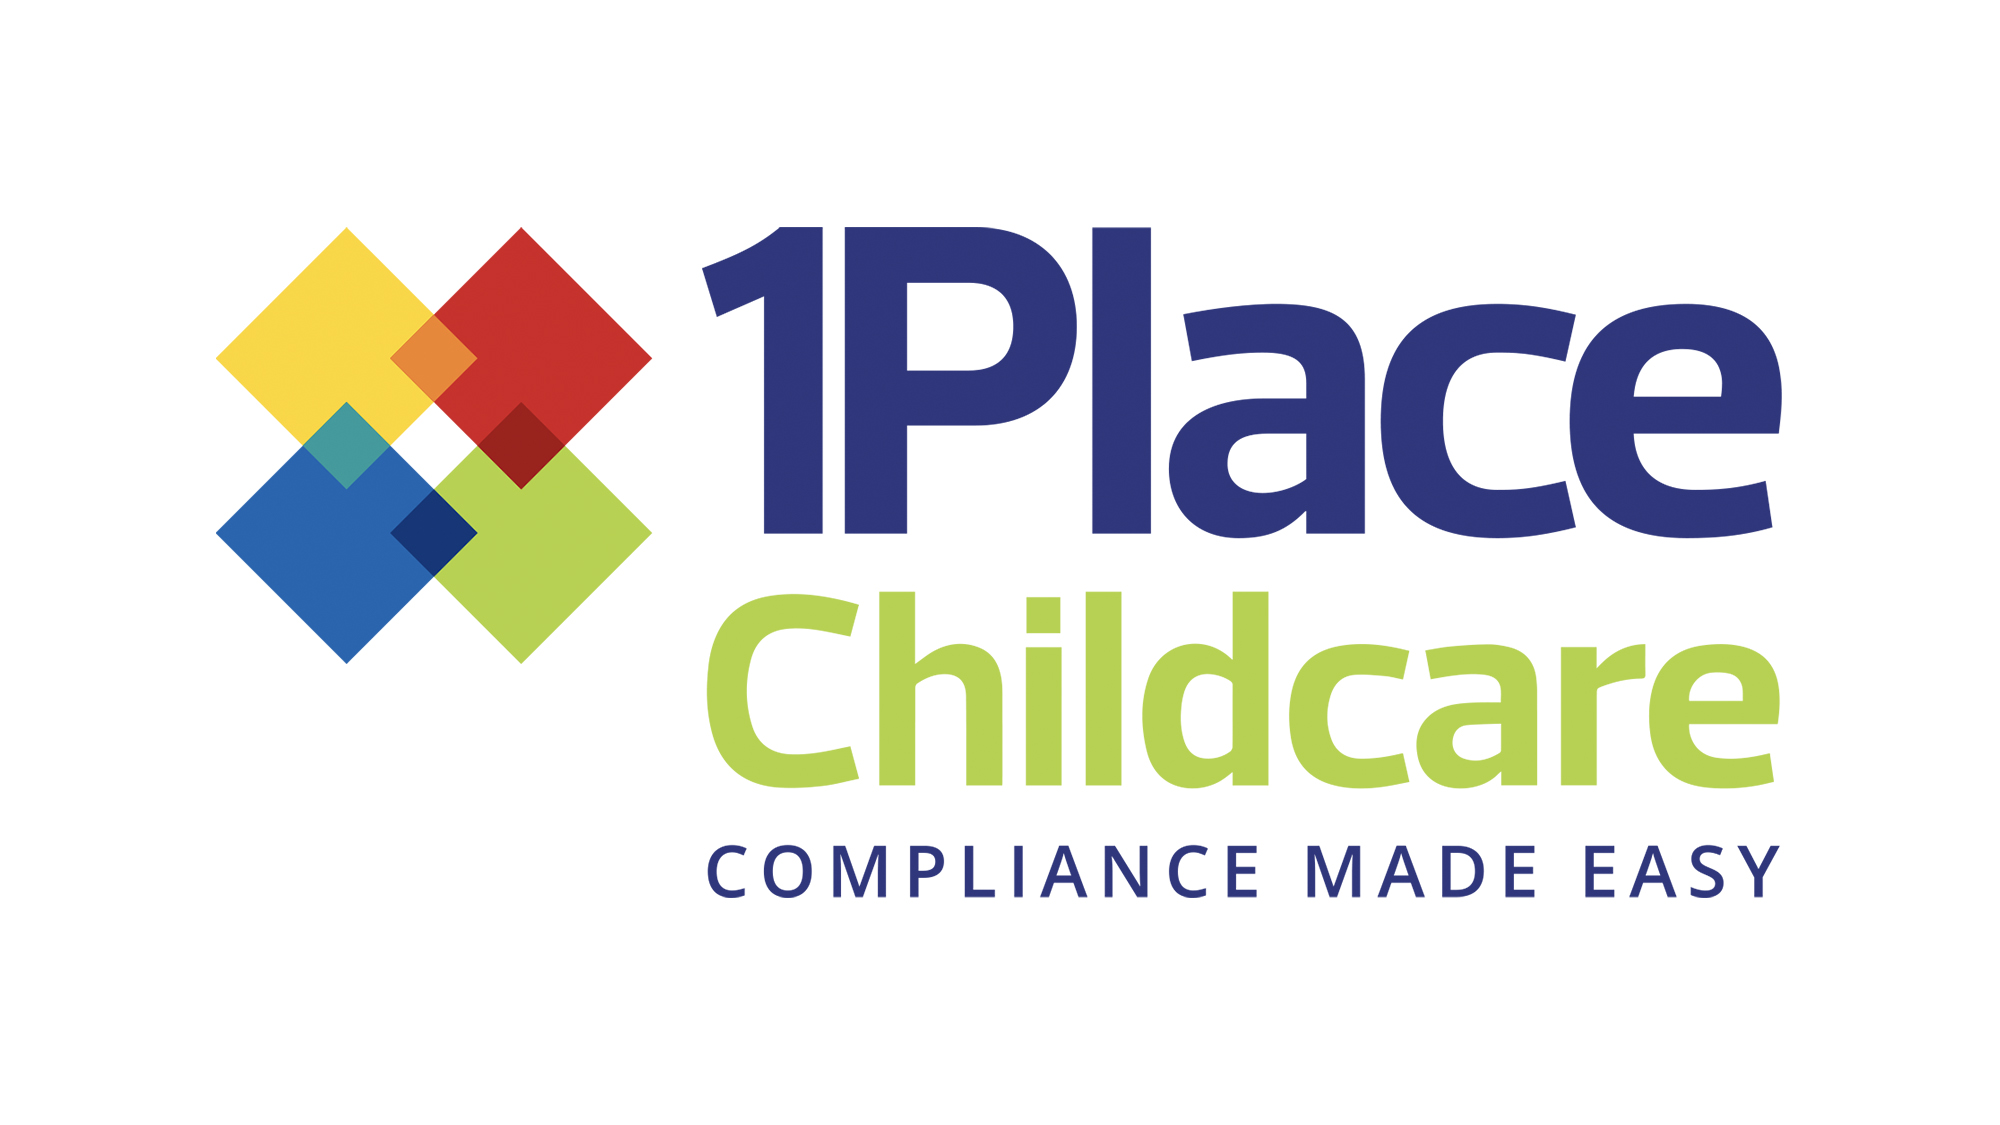 1Place Childcare logo